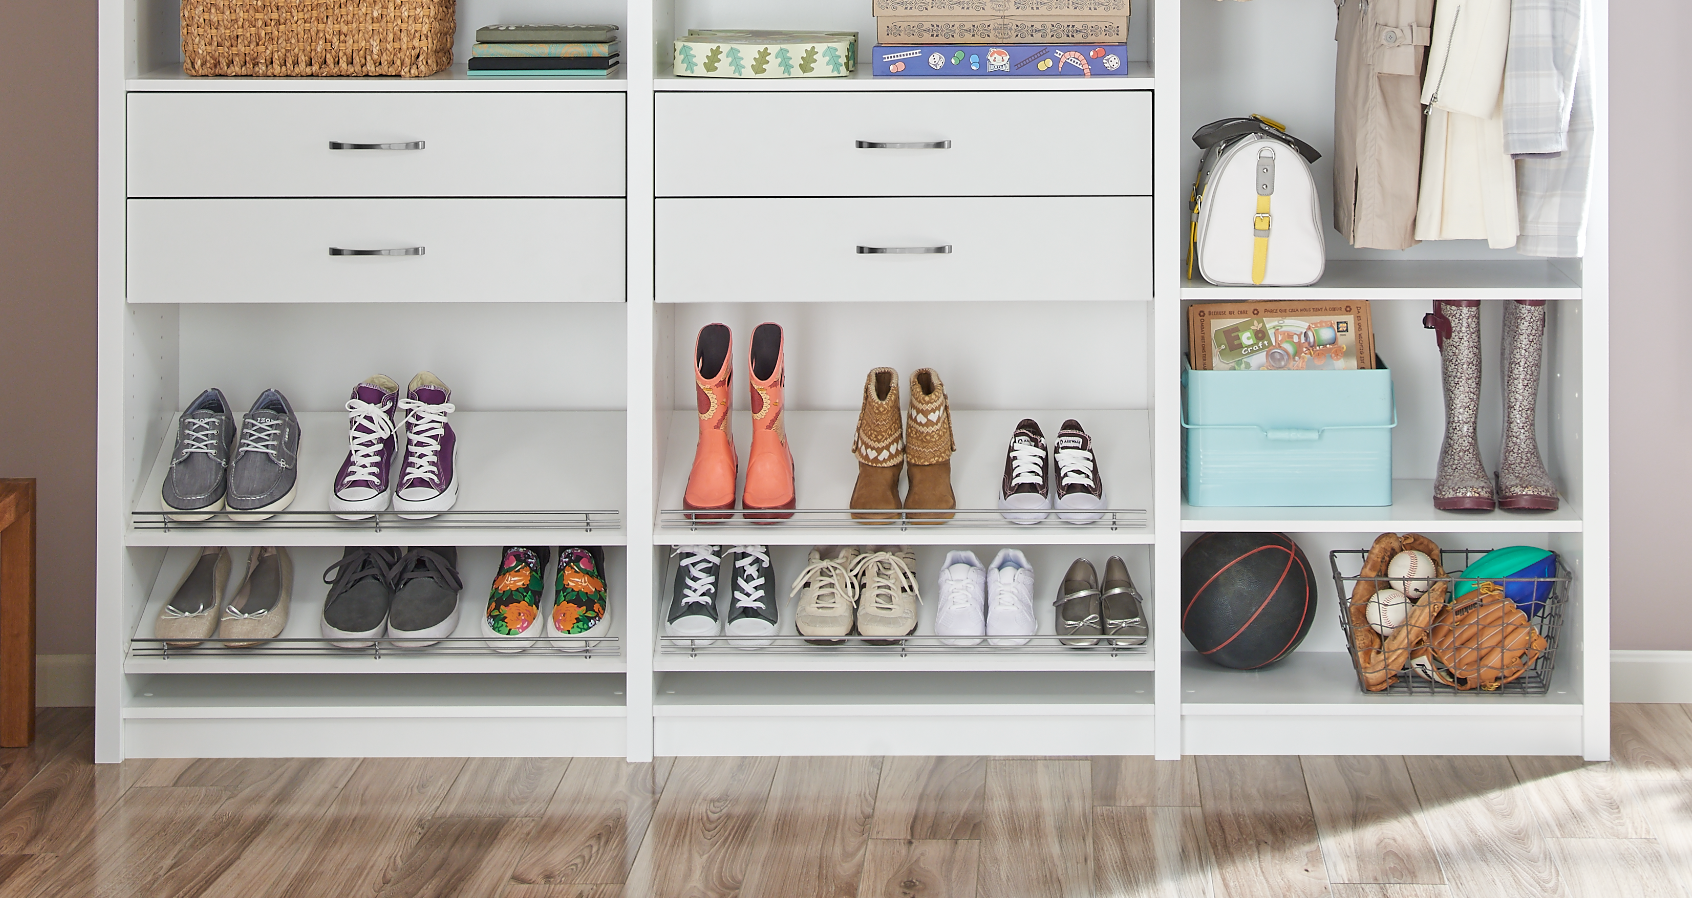 Mudroom_SpaceCreations Shoe Shelves